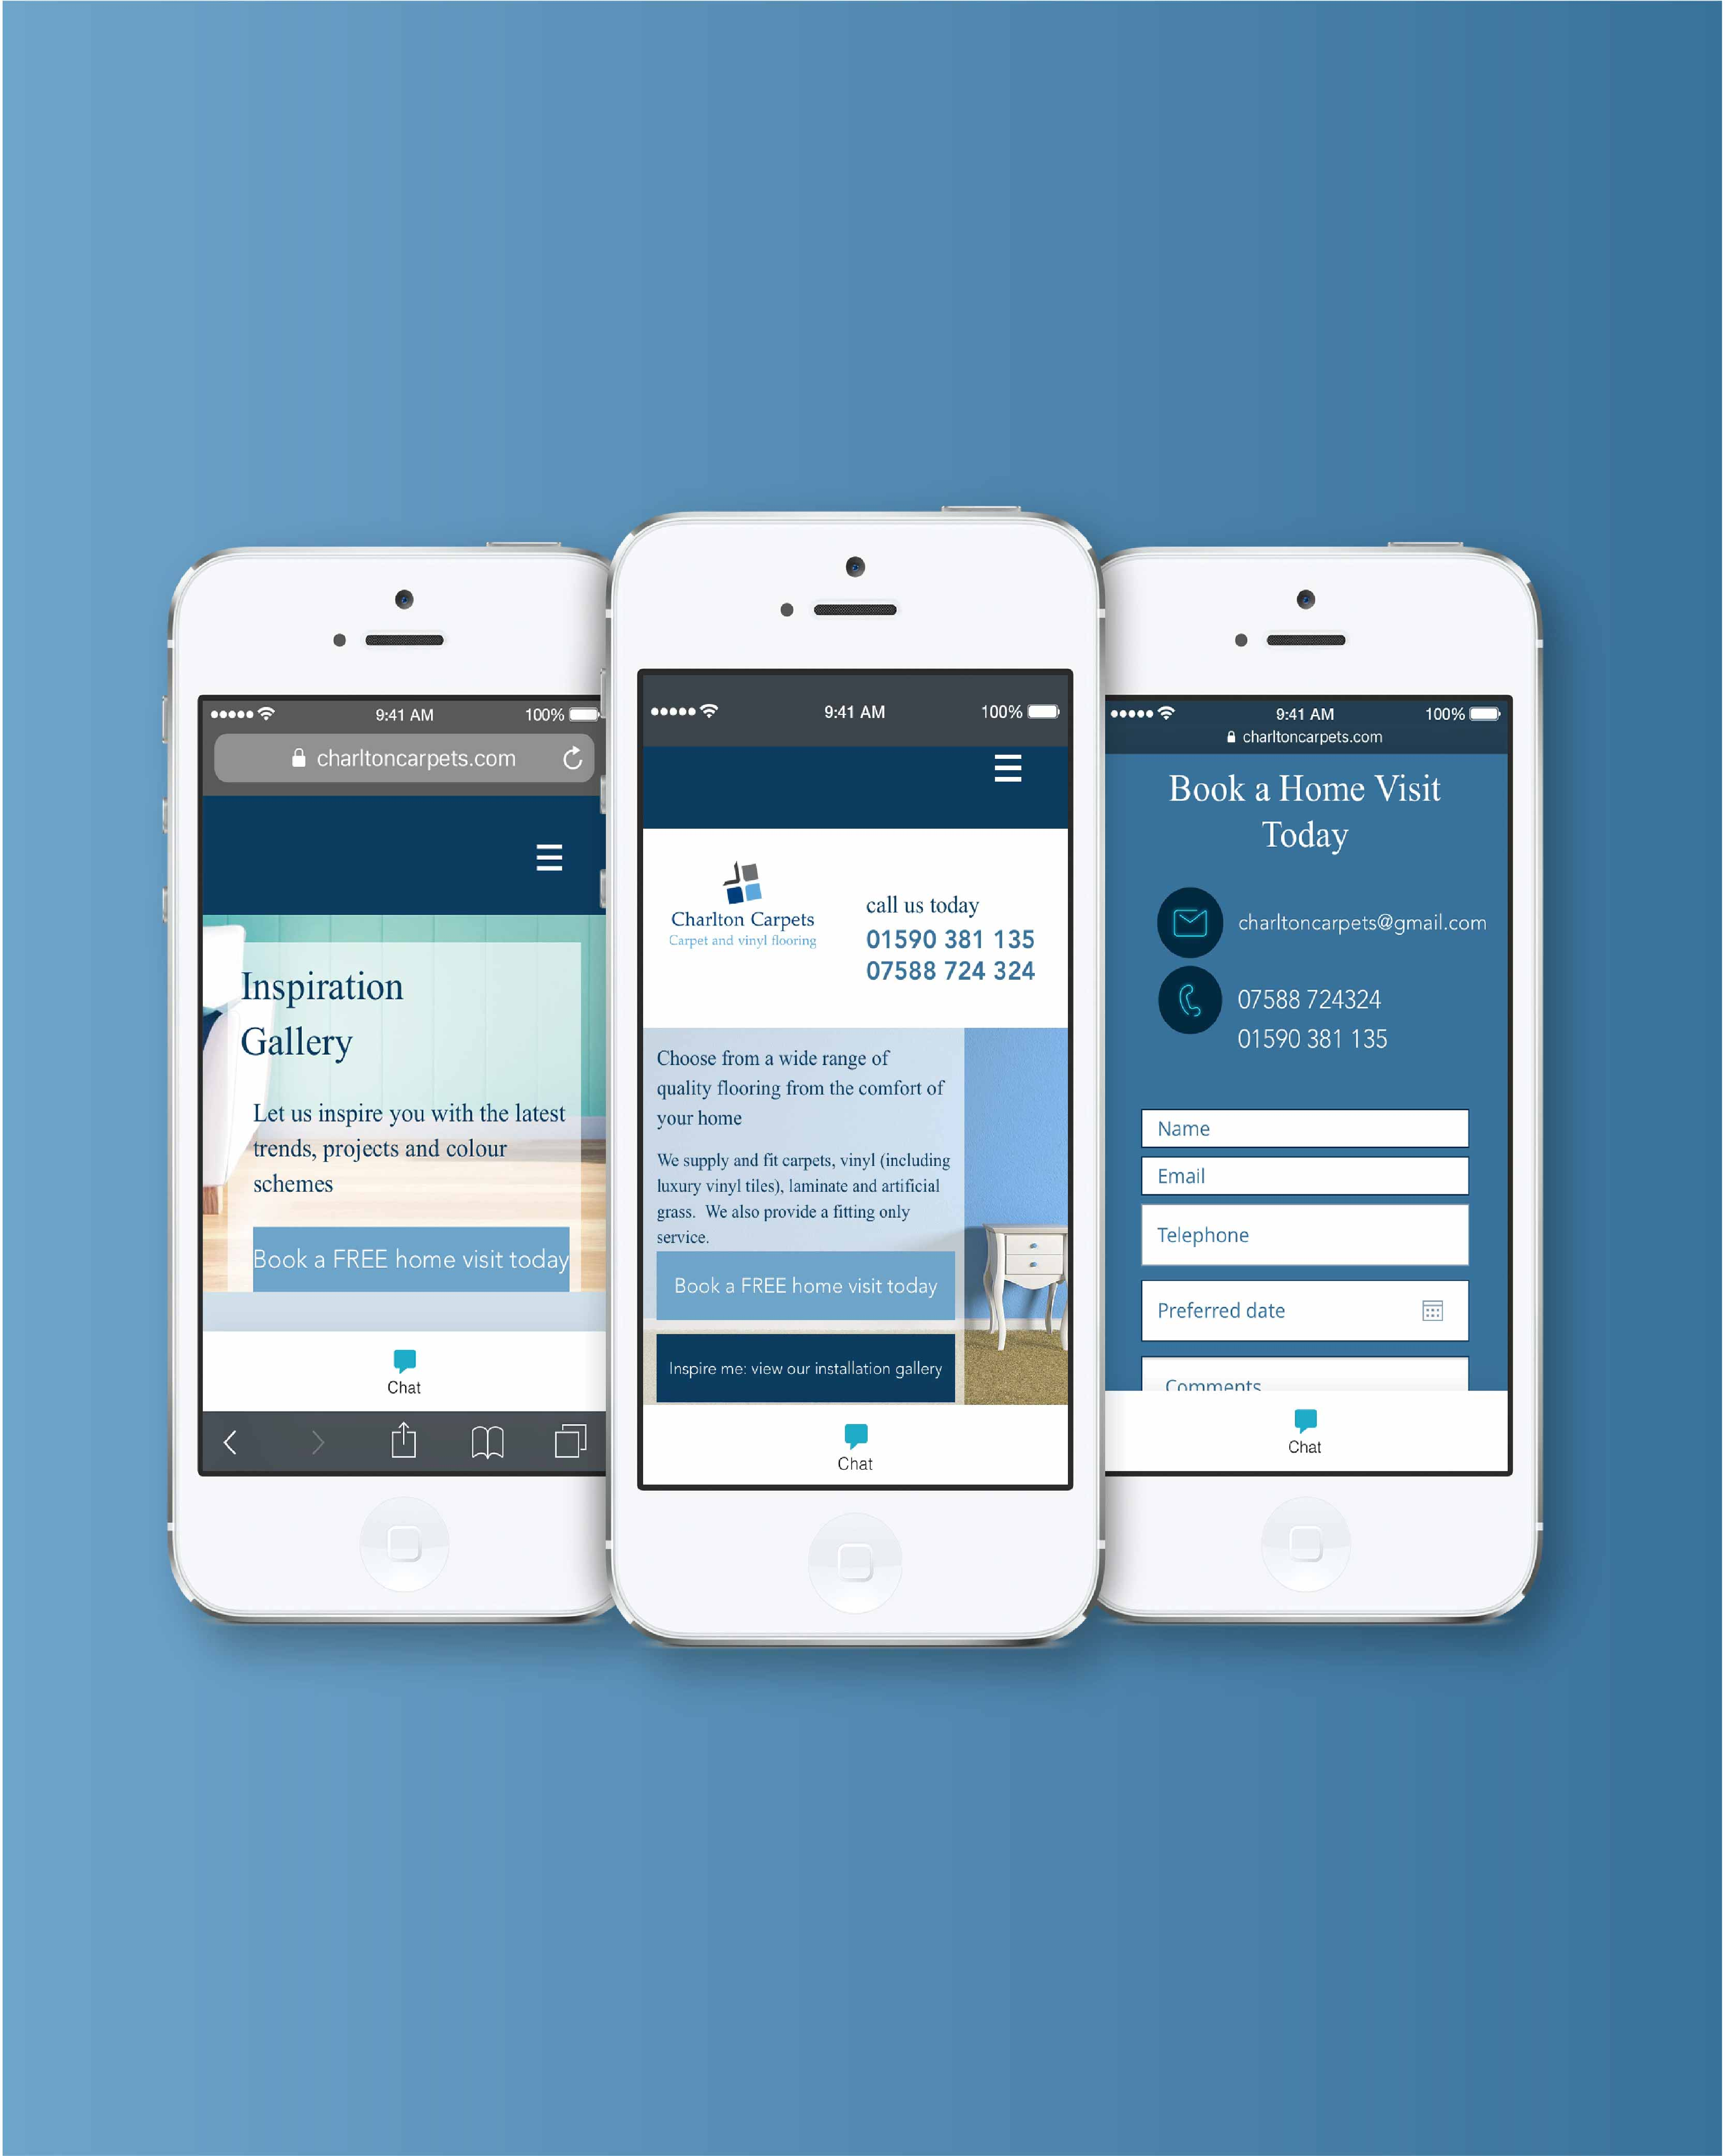 UX for mobile view in blues